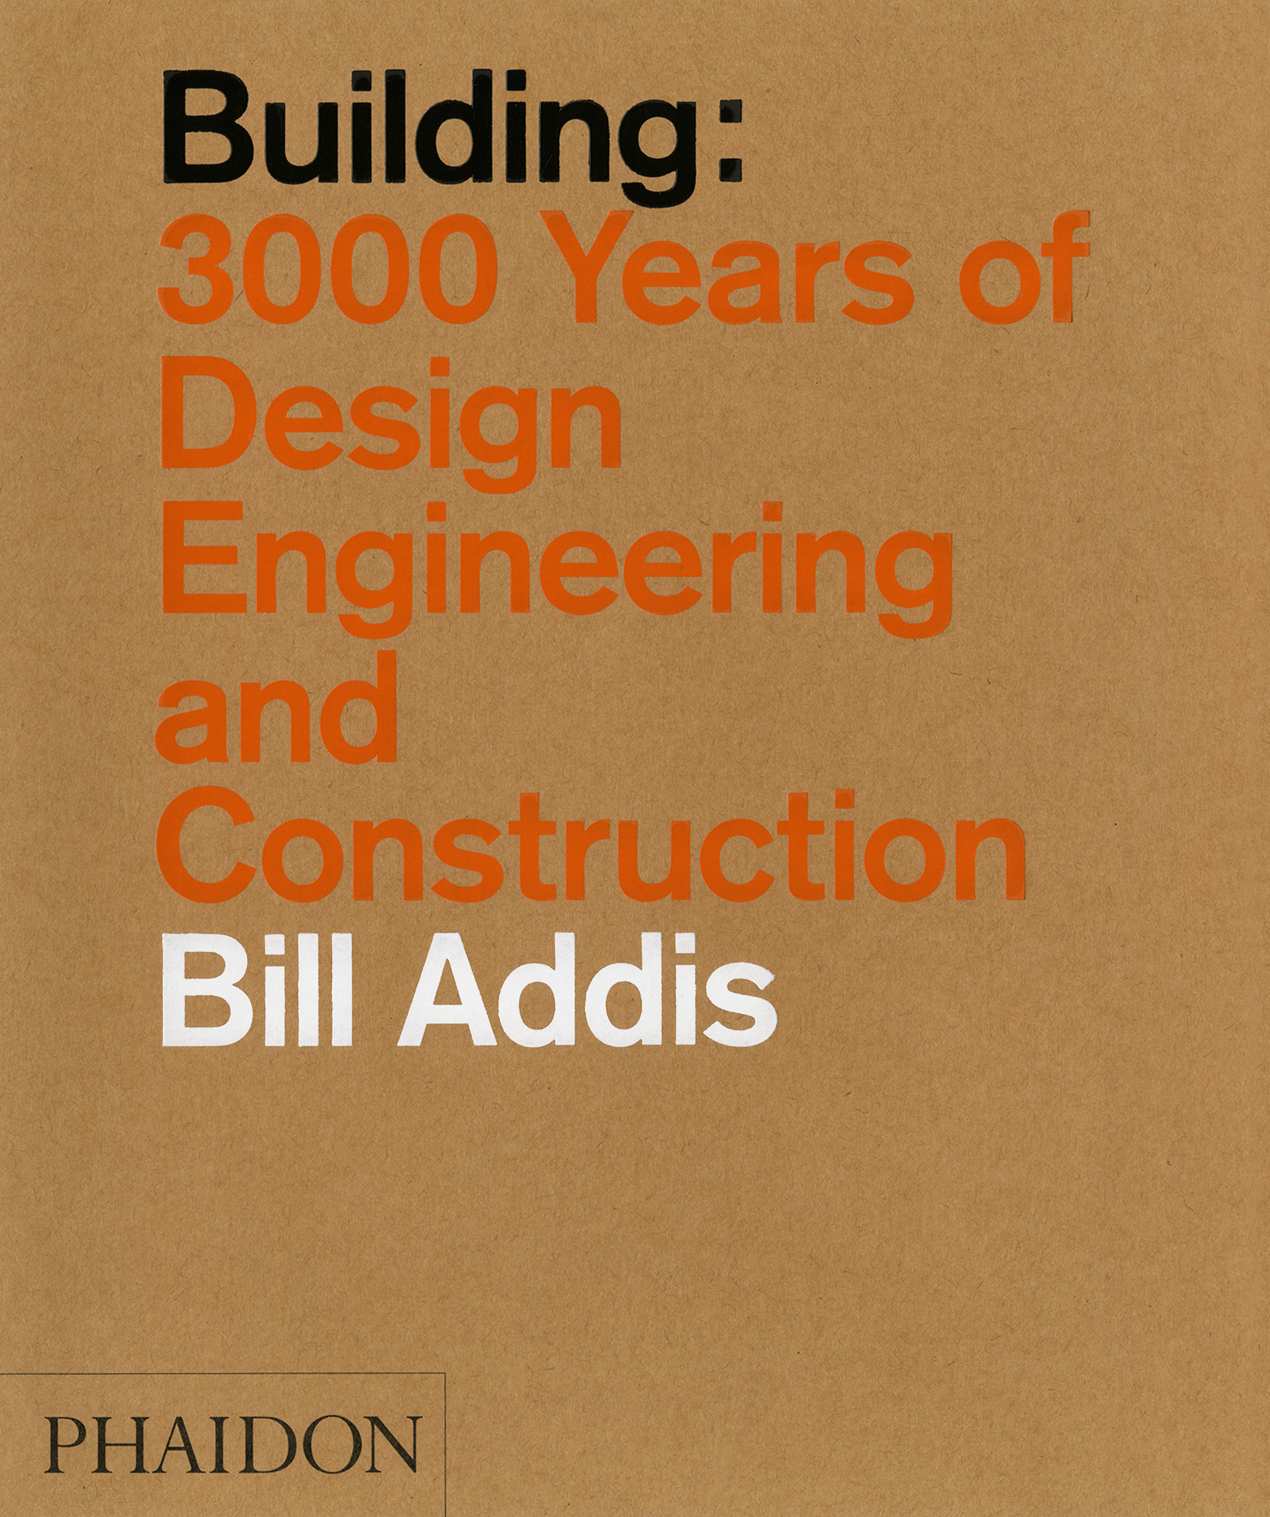 Building: 3000 Years of Design, Engineering and Construction by Addis Bill, ISBN: 9780714869391